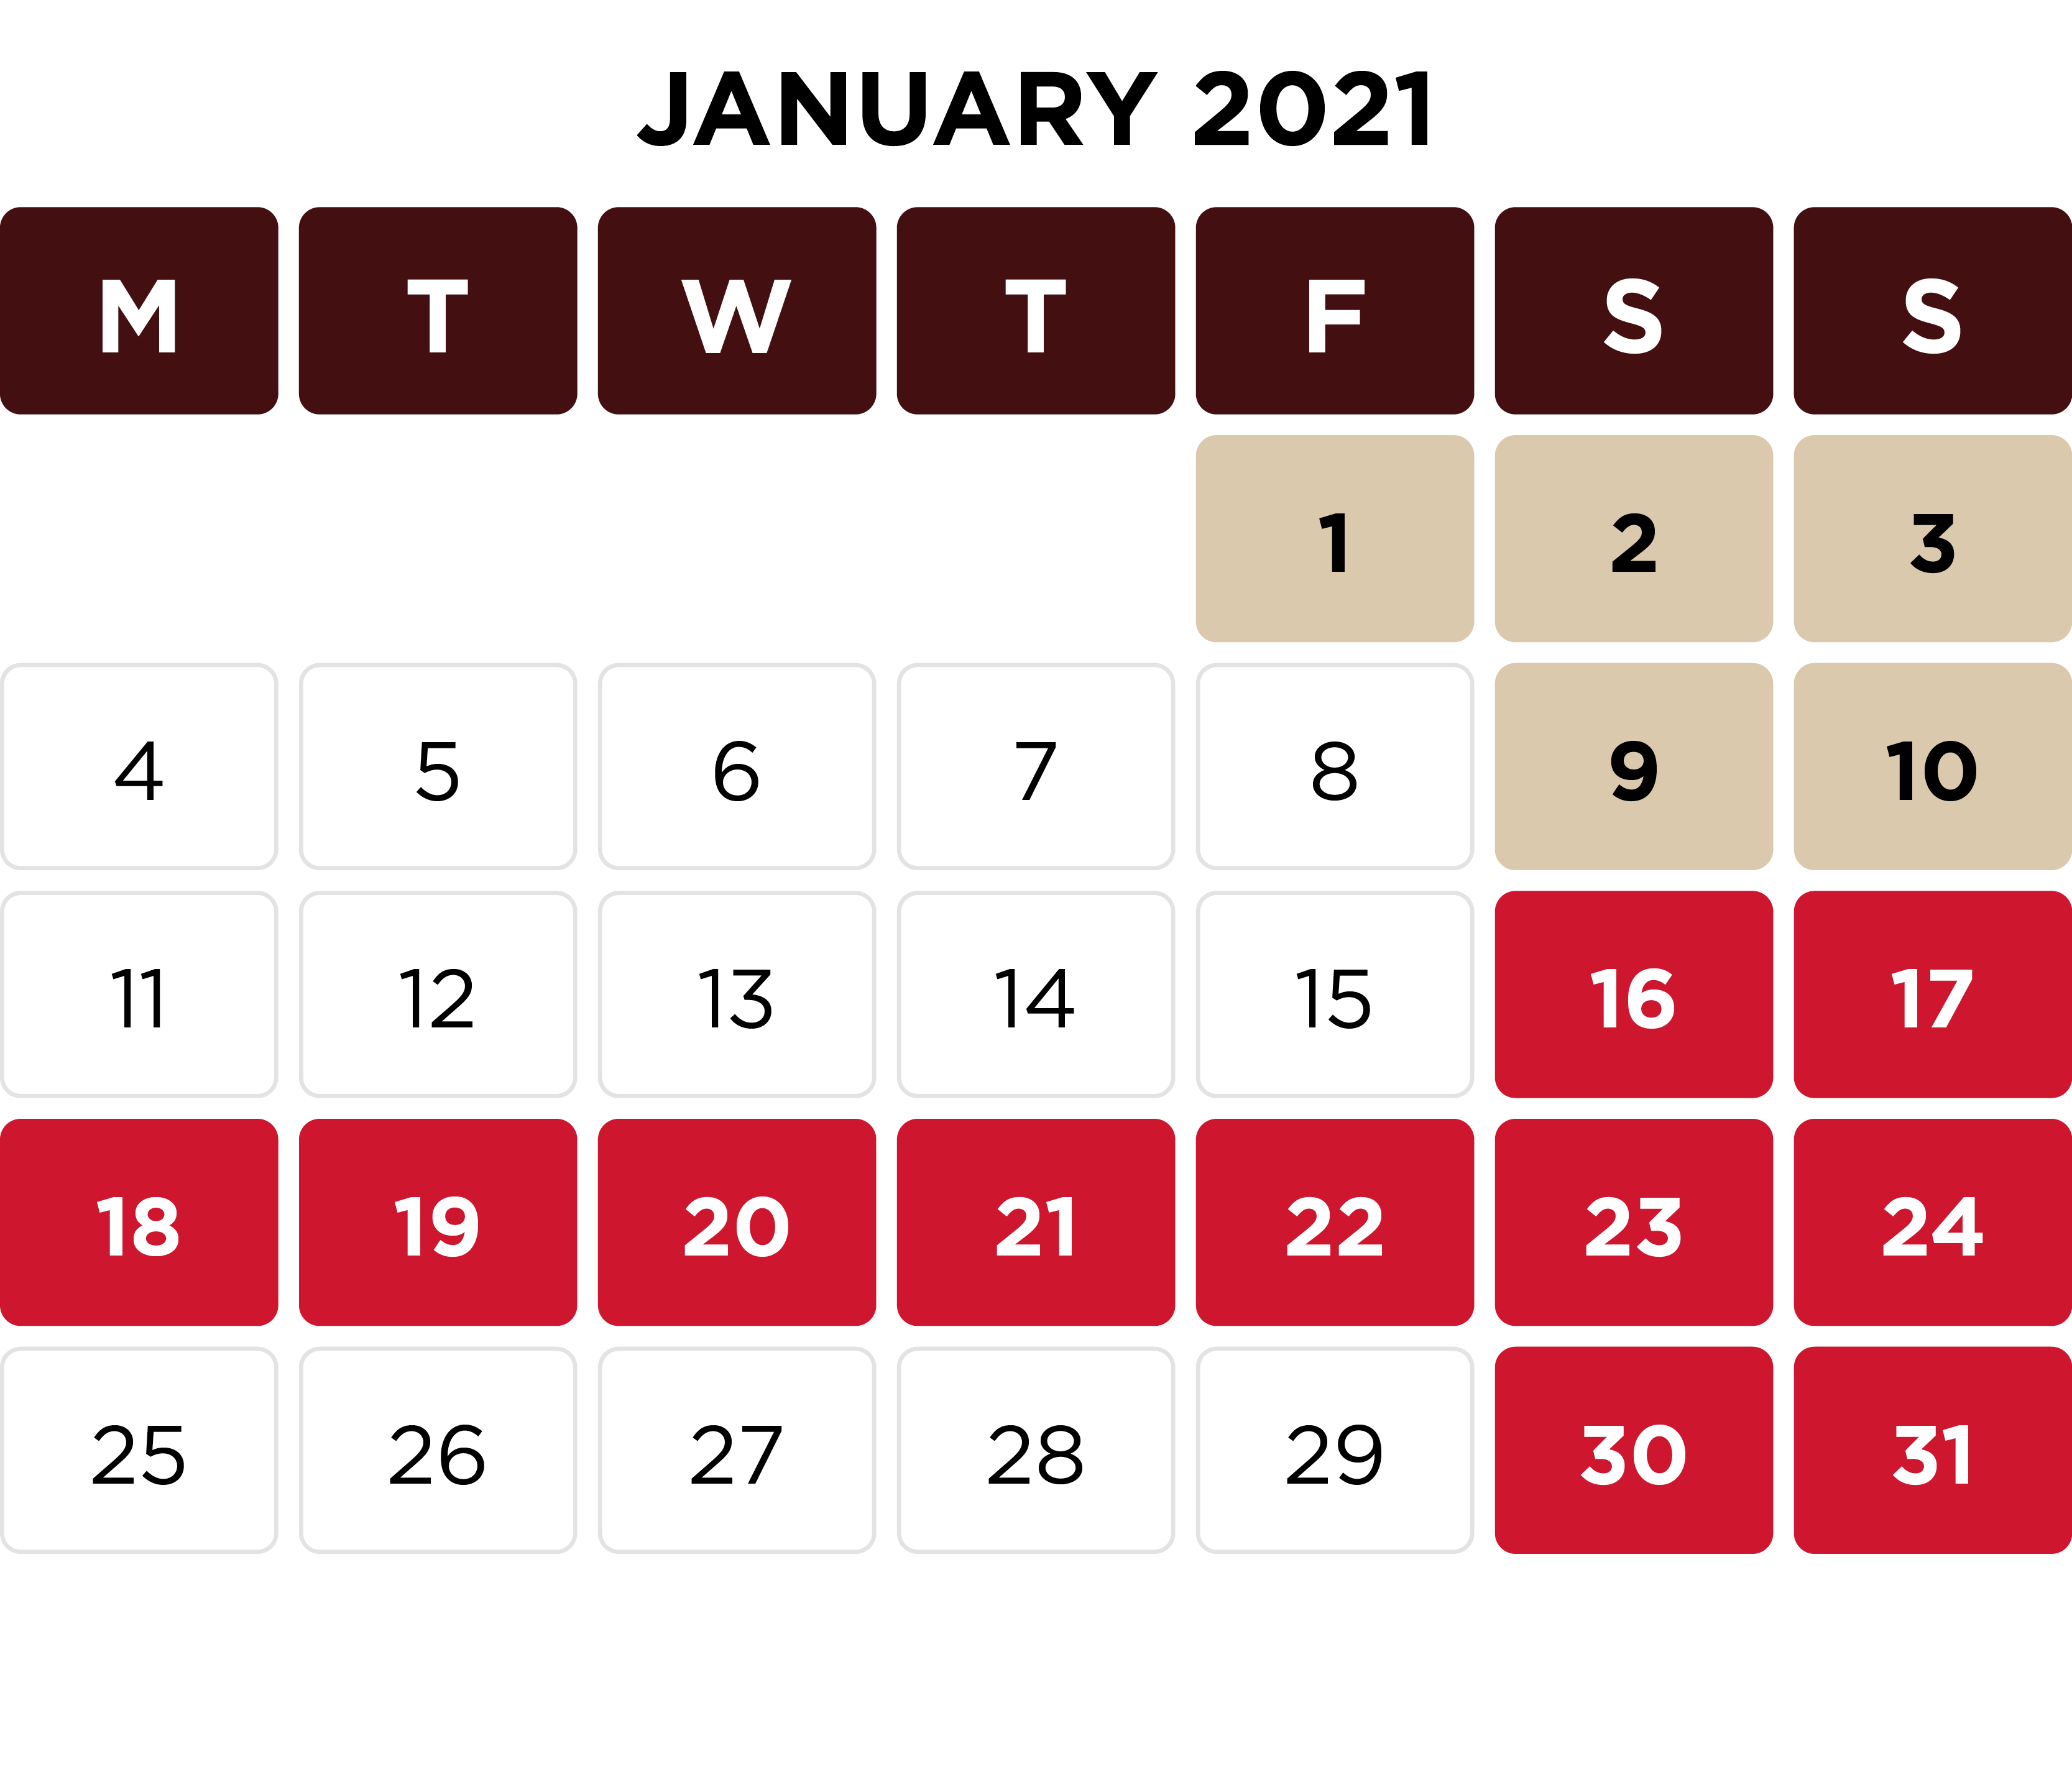 LNER1078 East Coast Upgrade 2020-21 Dates - Web Graphic Month Supply 800x688px - 03 January 2021.png